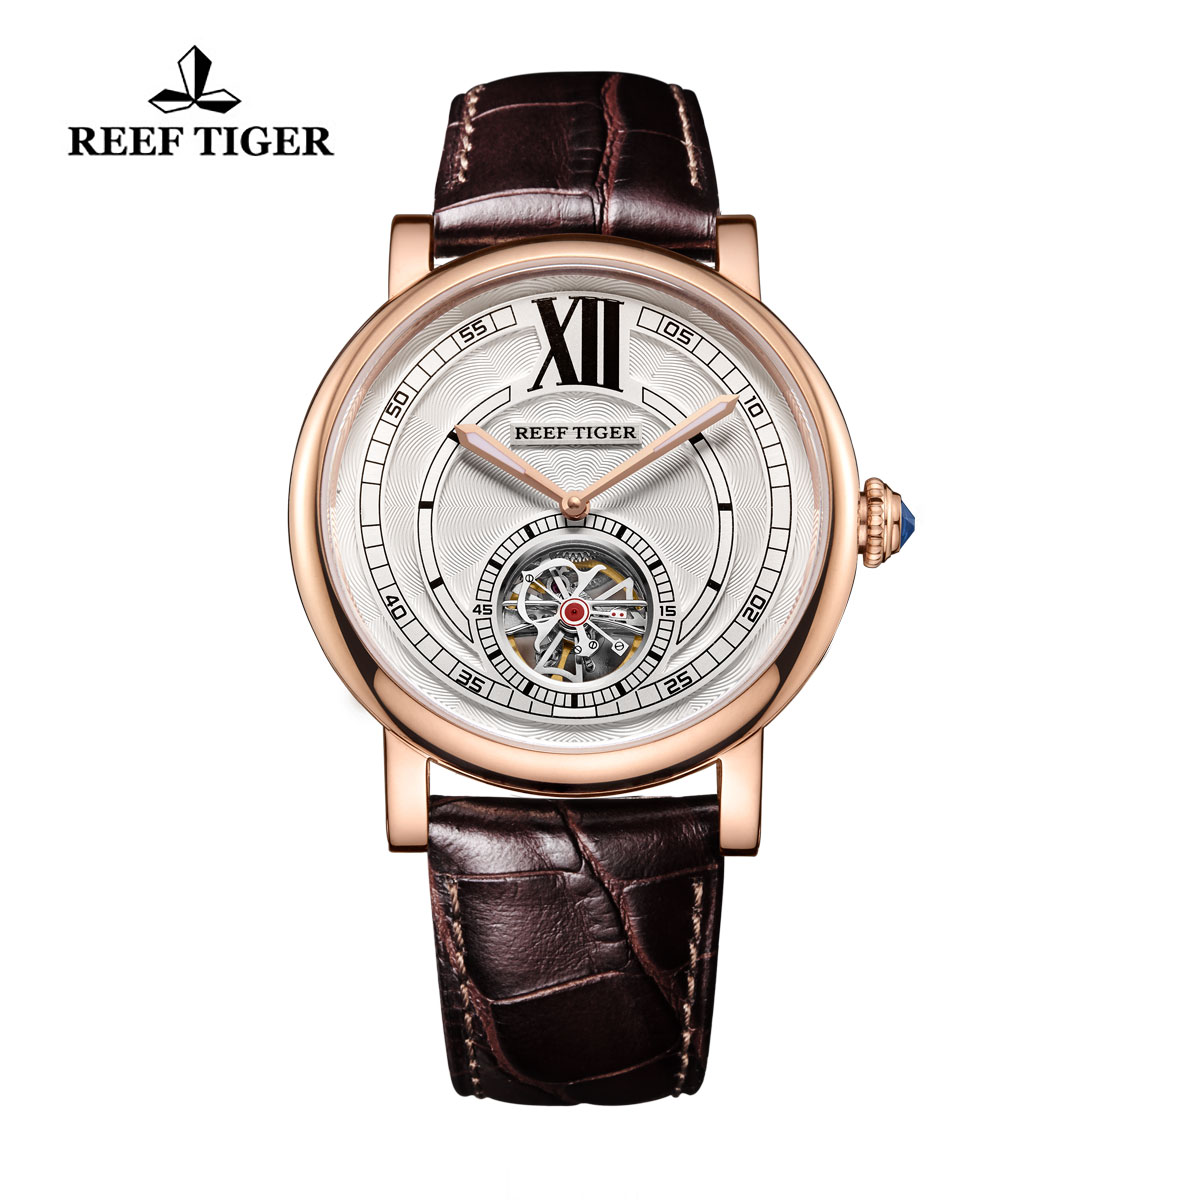 Reef Tiger Royal Crown Tourbillon Watch Luxury Rose Gold Case Calfskin Leather Strap RGA192